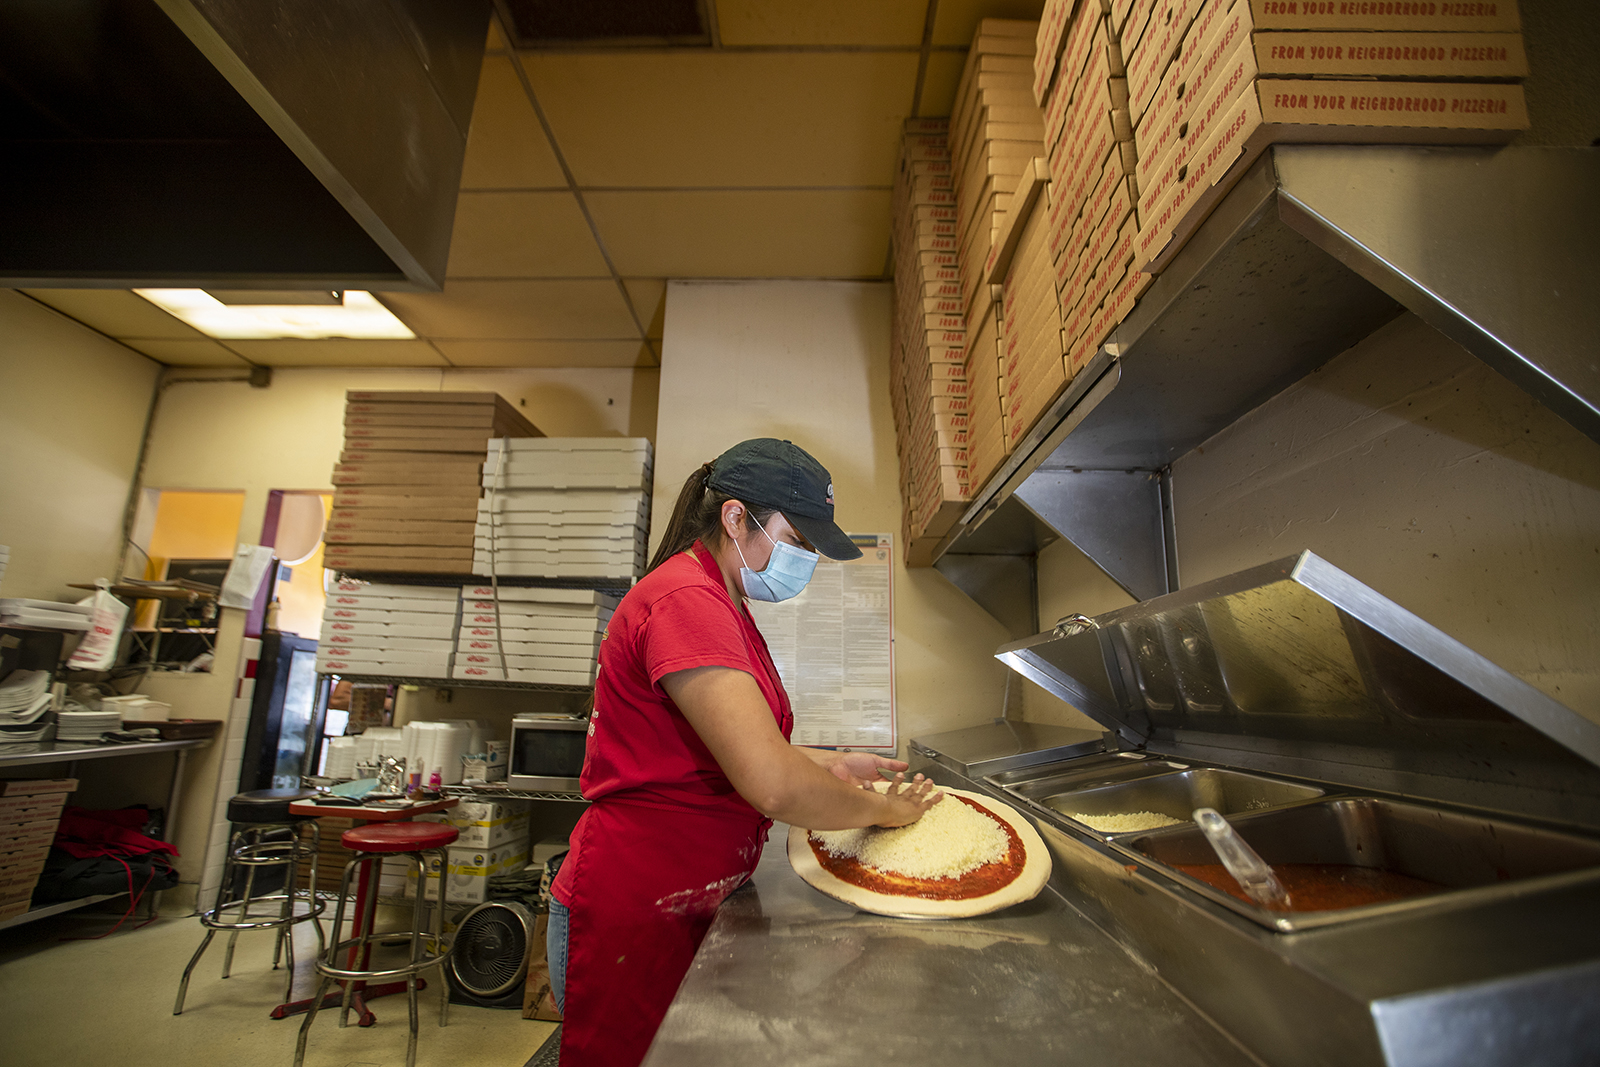 Jocelyn Campos, 28, manager of Big Berthas Pizza, makes pizza at her family's restaurant near Disneyland on Wednesday, September 30, in Anaheim, California.